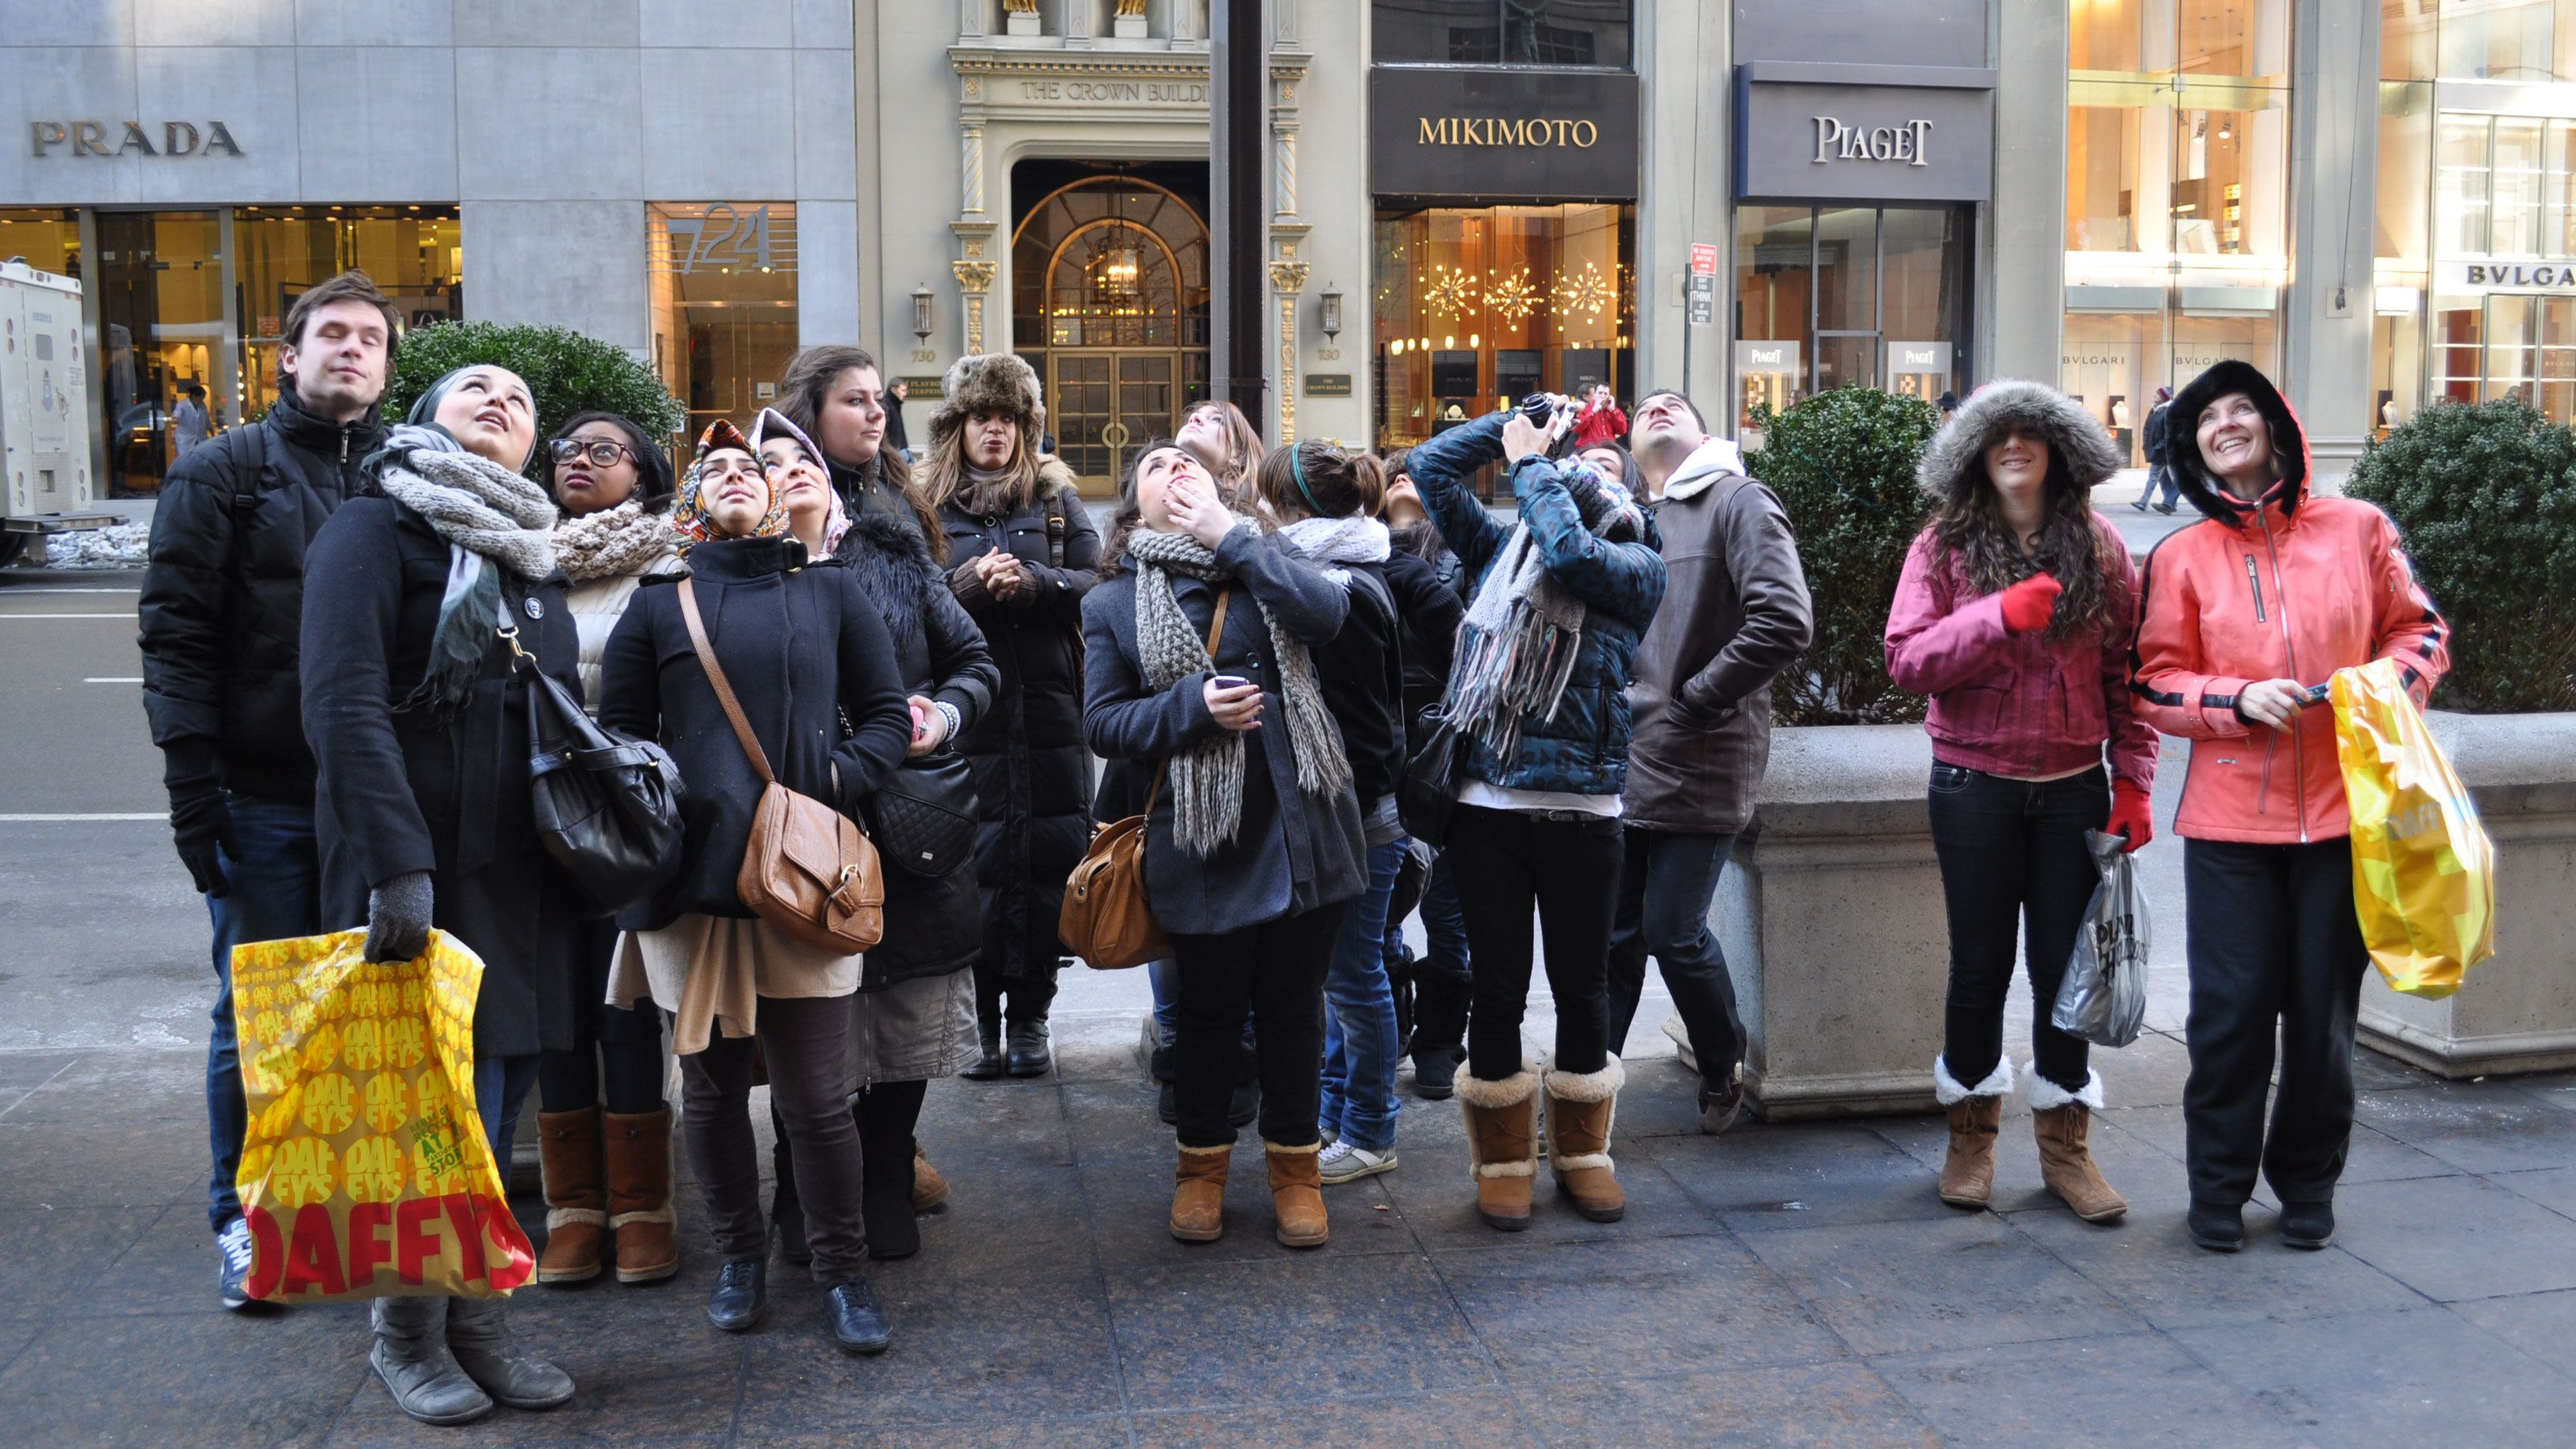 Tour group on Fifth Avenue in New York